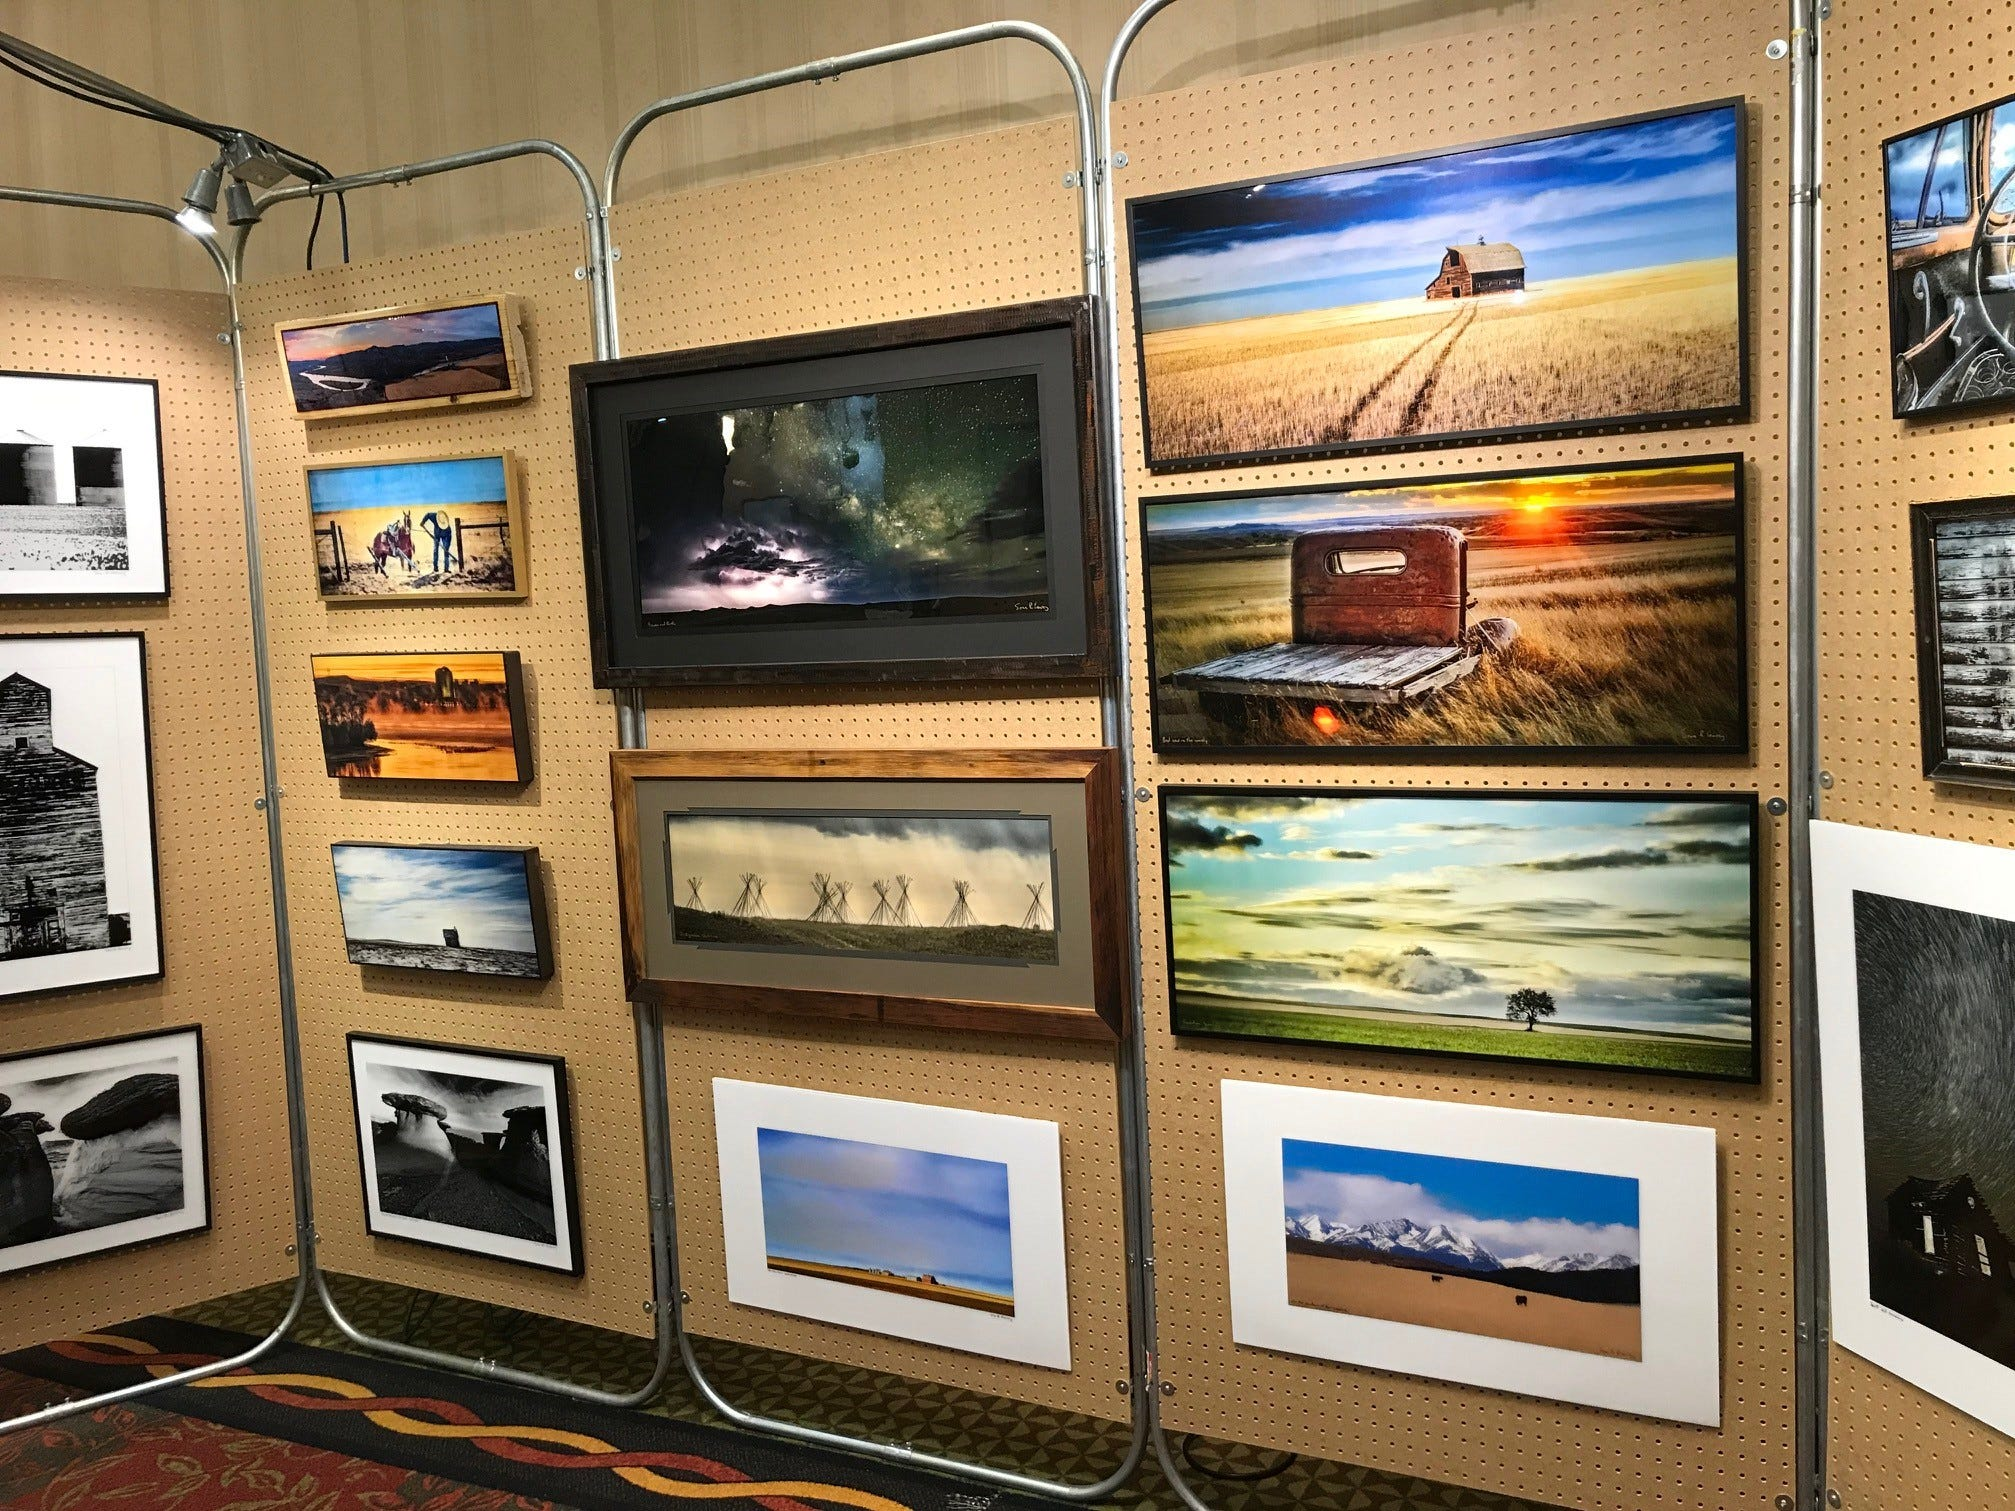 Sean Heavey uses a resin glaze on his photography, which makes the colors pop. He's on display at the Jay Contway Show at the Hilton Garden Inn.